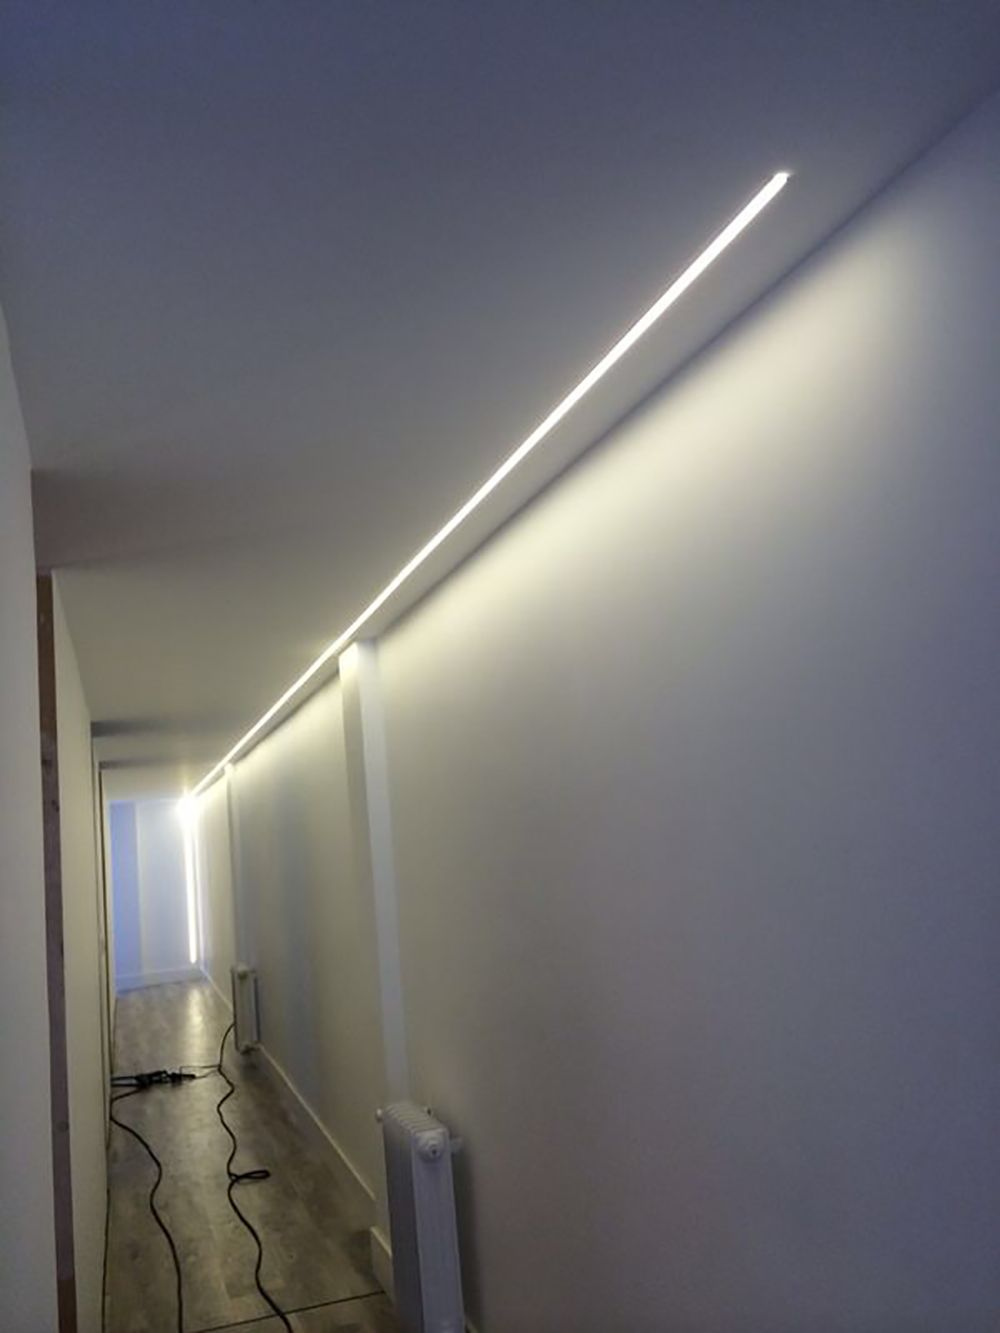 Ideas de decoraci n e iluminaci n con tiras de leds - Decoracion lamparas techo ...